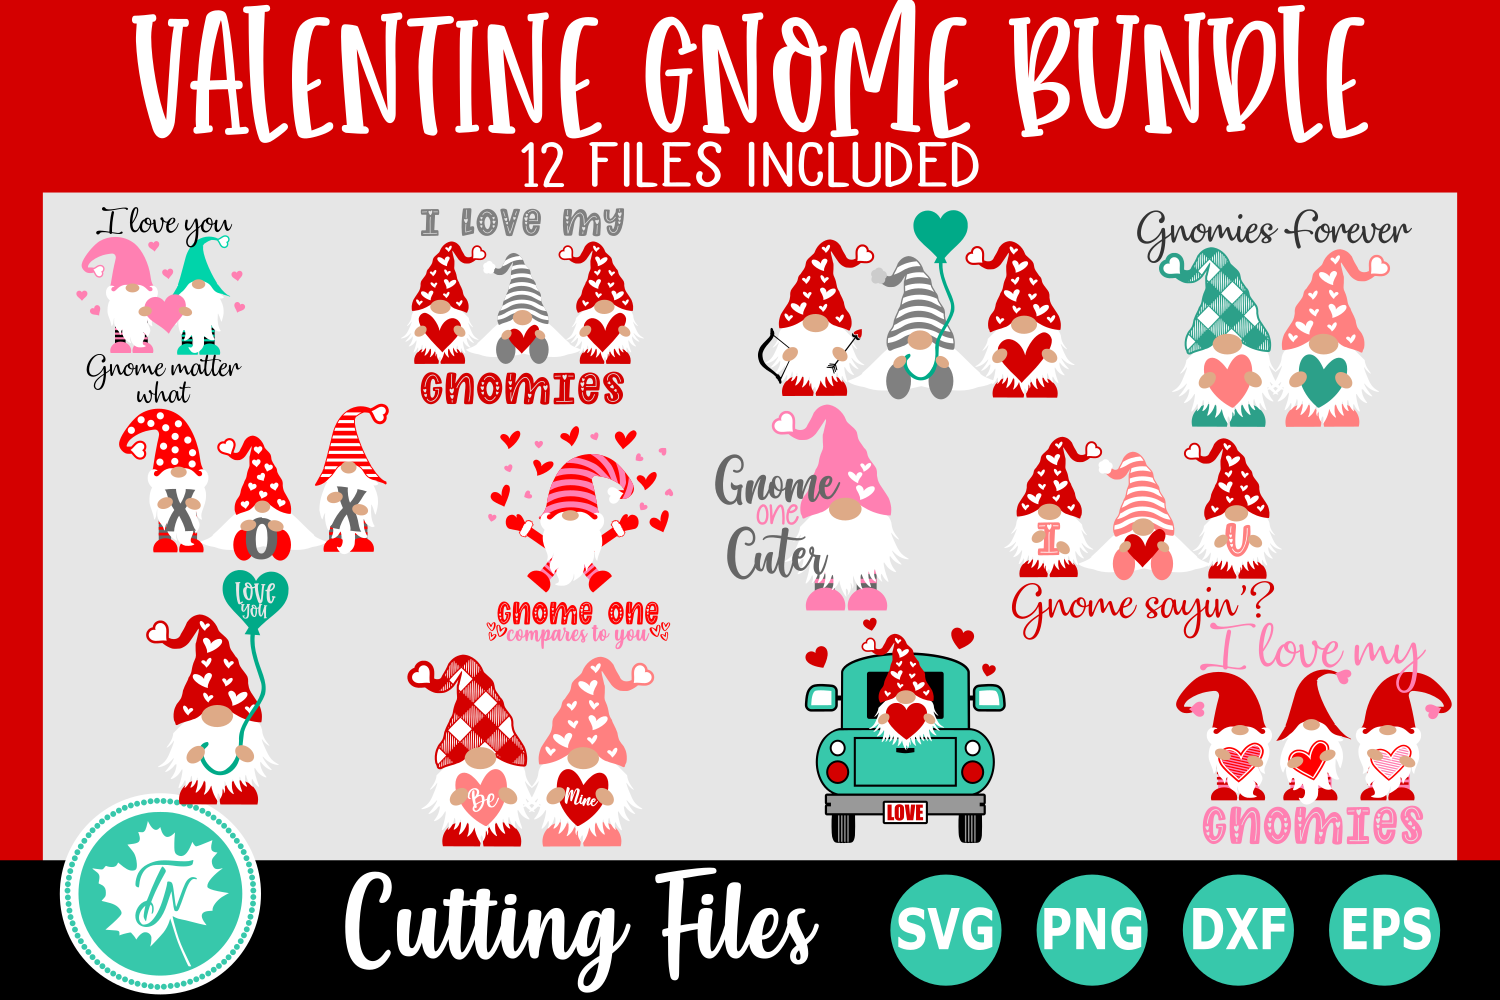 Download Free Valentine Gnome Bundle Graphic By Truenorthimagesca Creative Fabrica for Cricut Explore, Silhouette and other cutting machines.